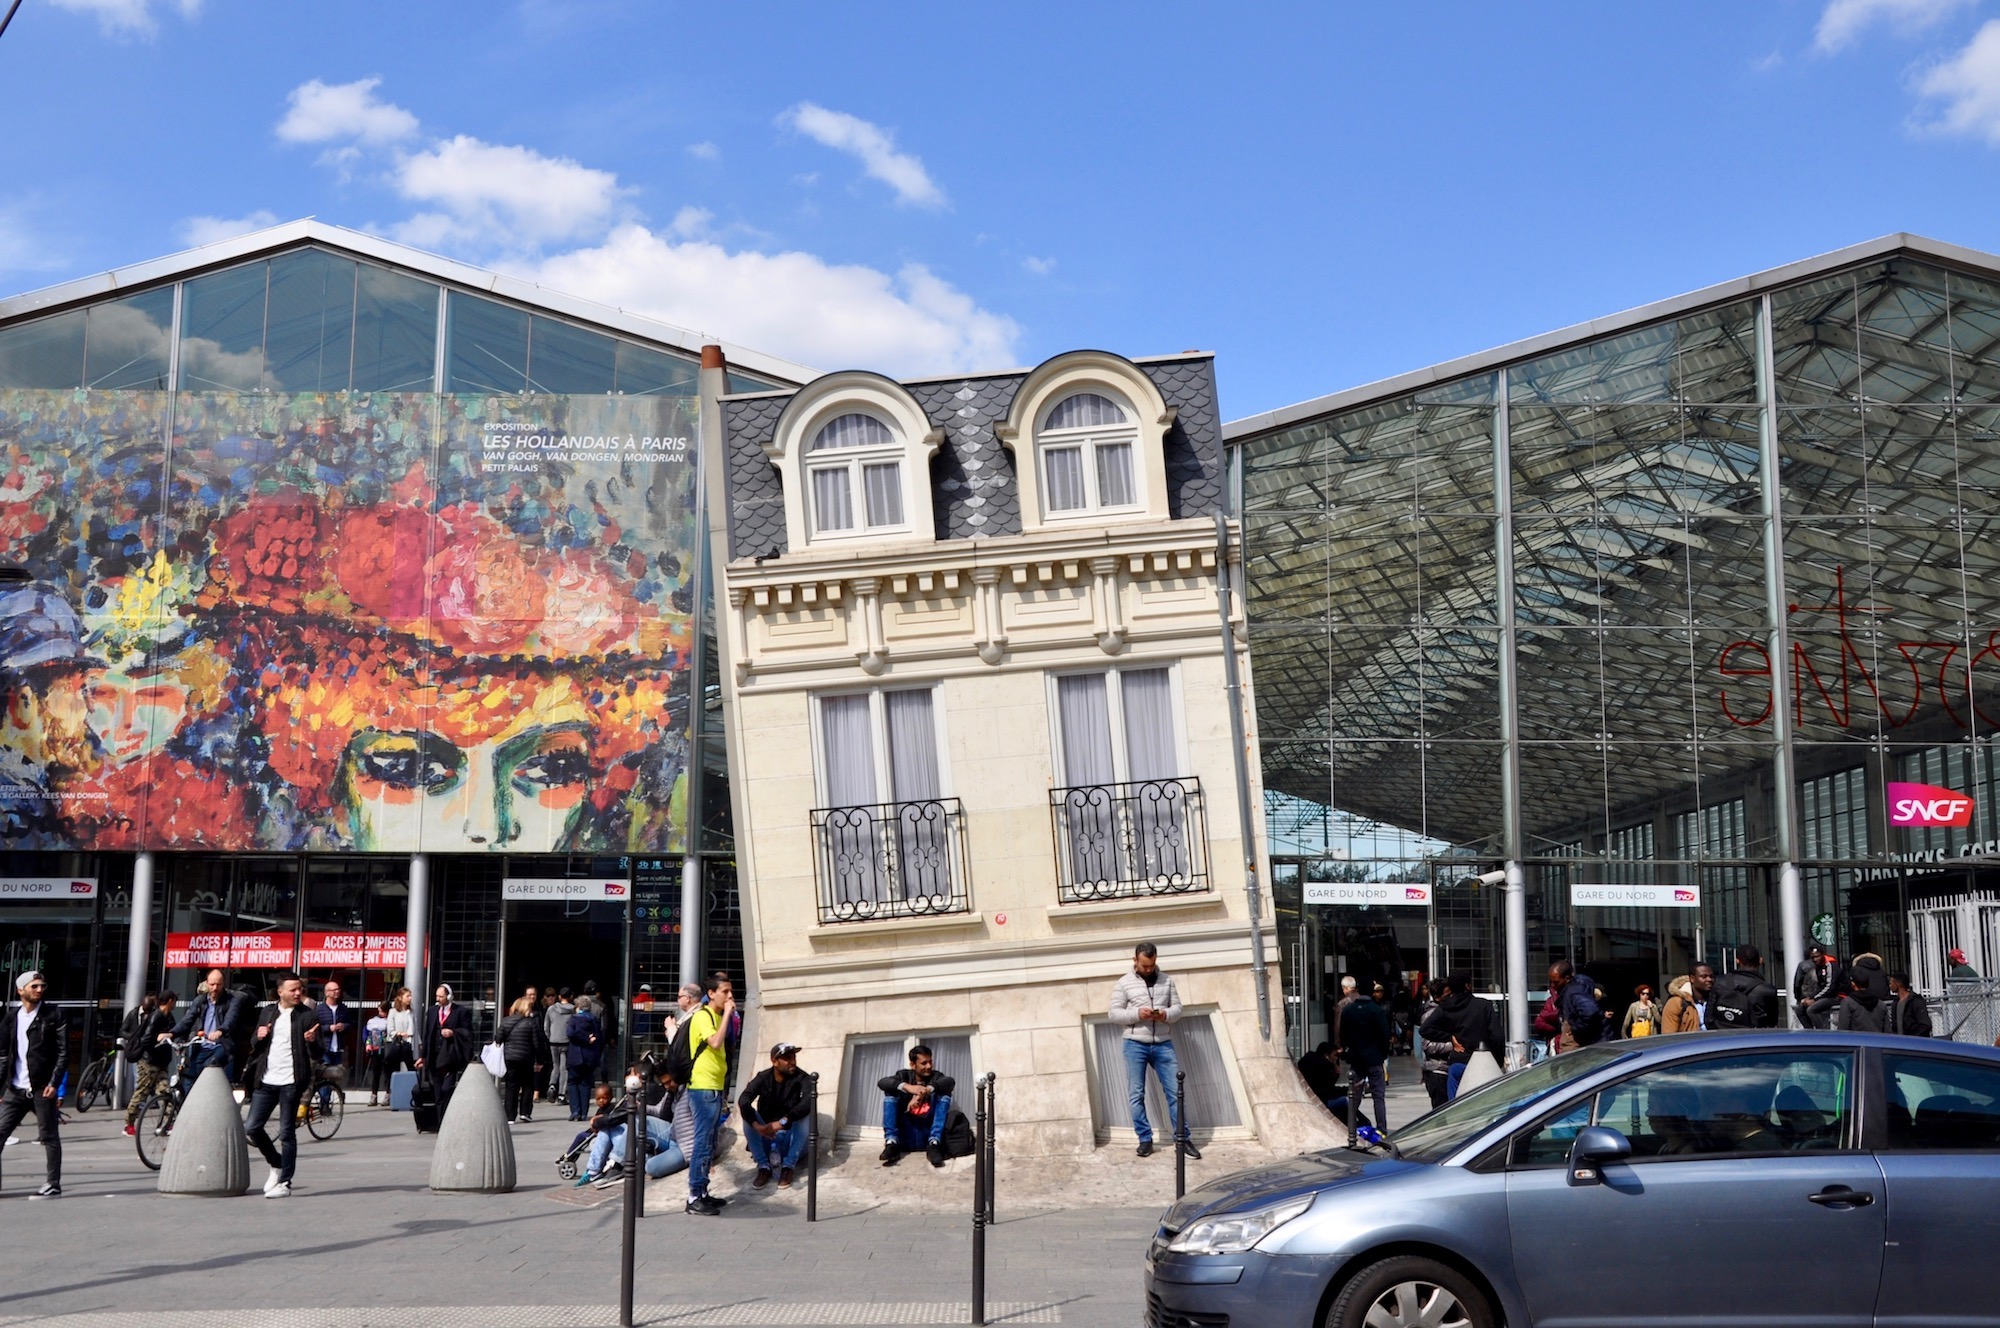 Where to eat around Gare du Nord station in Paris, and see art like this Leadro Erlich installation.